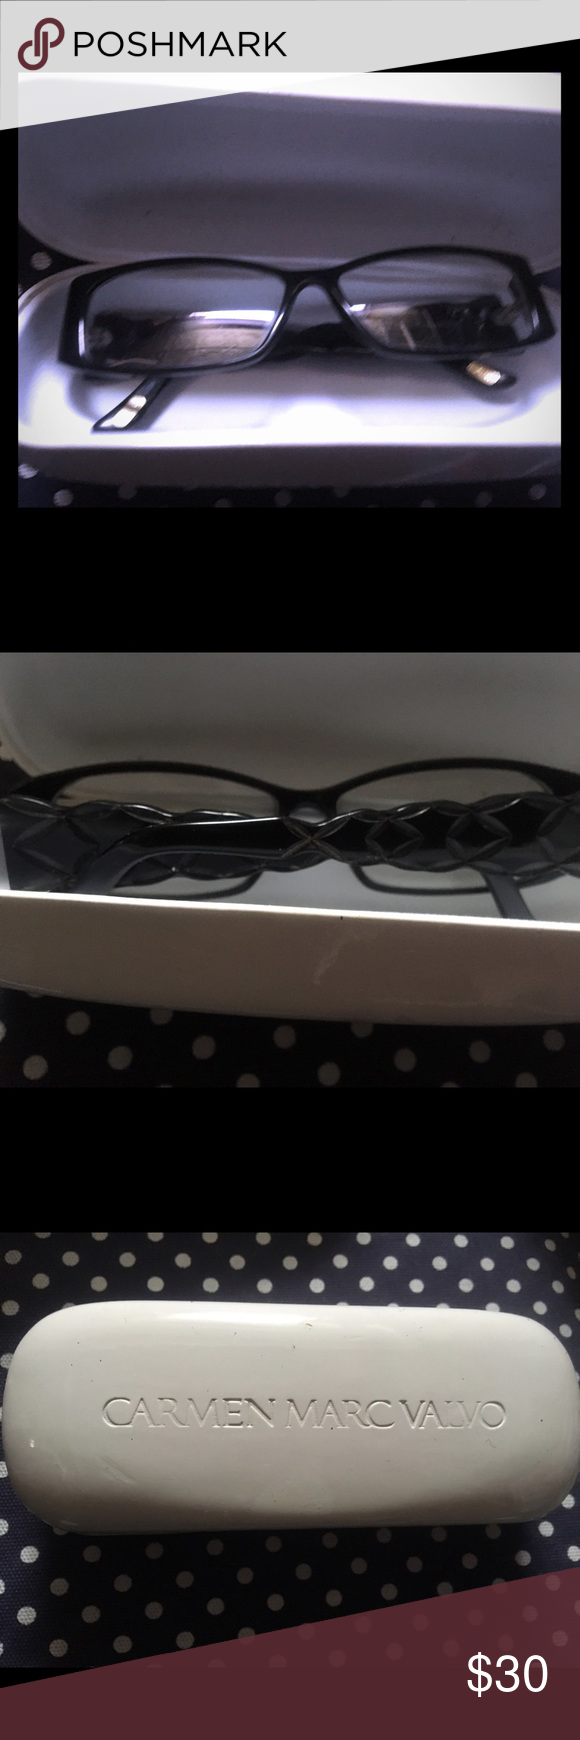 Carmen Marc Valvo eyeglasses Black Carmen Marc Valvo eyeglasses. Good condition. Carmen Marc Valvo Accessories Glasses